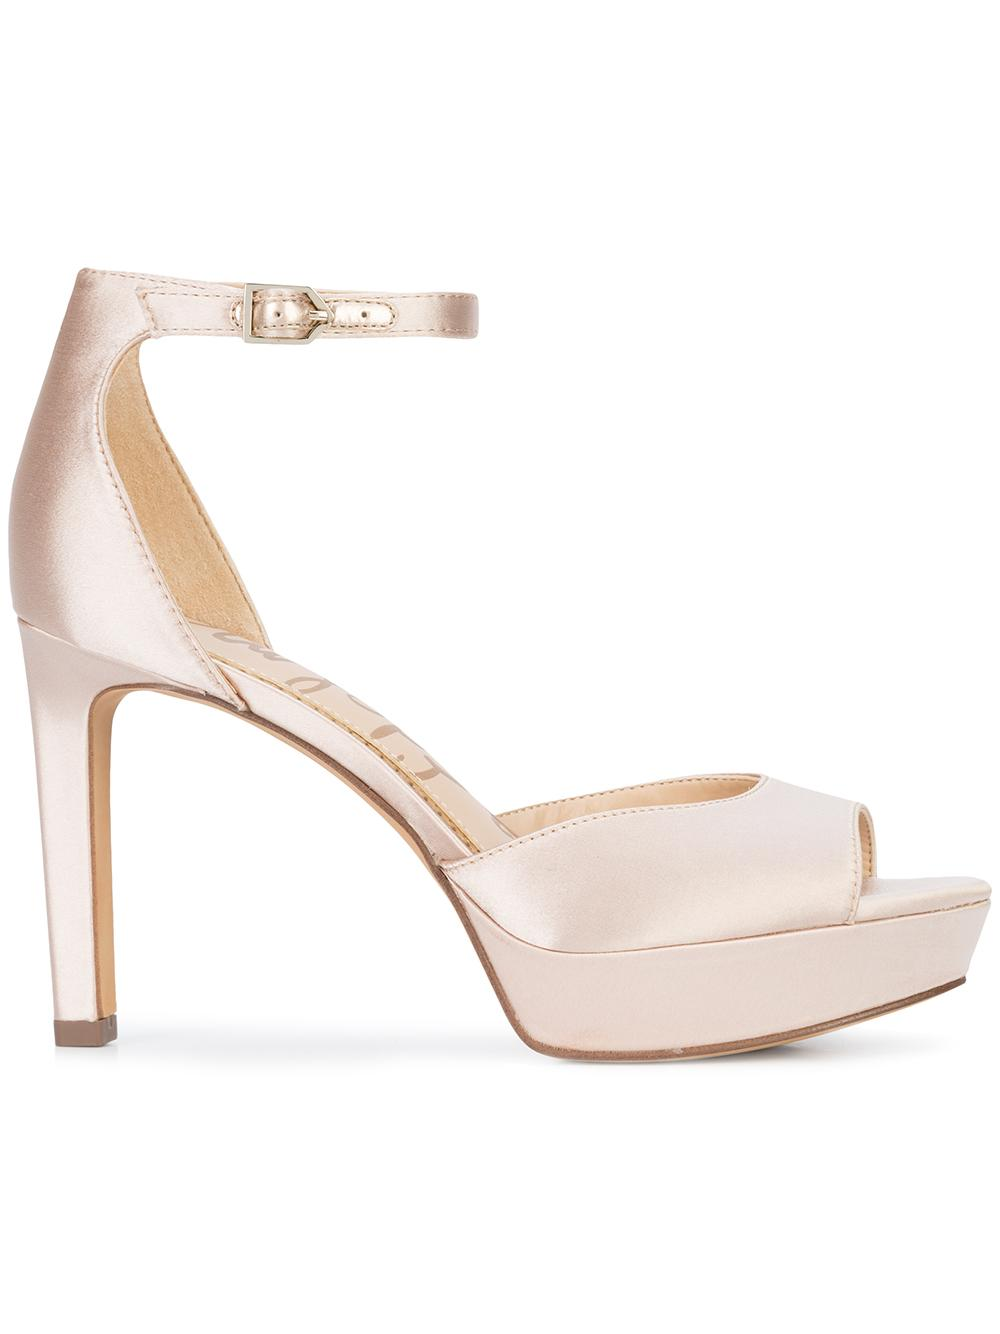 Satin Peep Toe High Heel With Ankle Strap